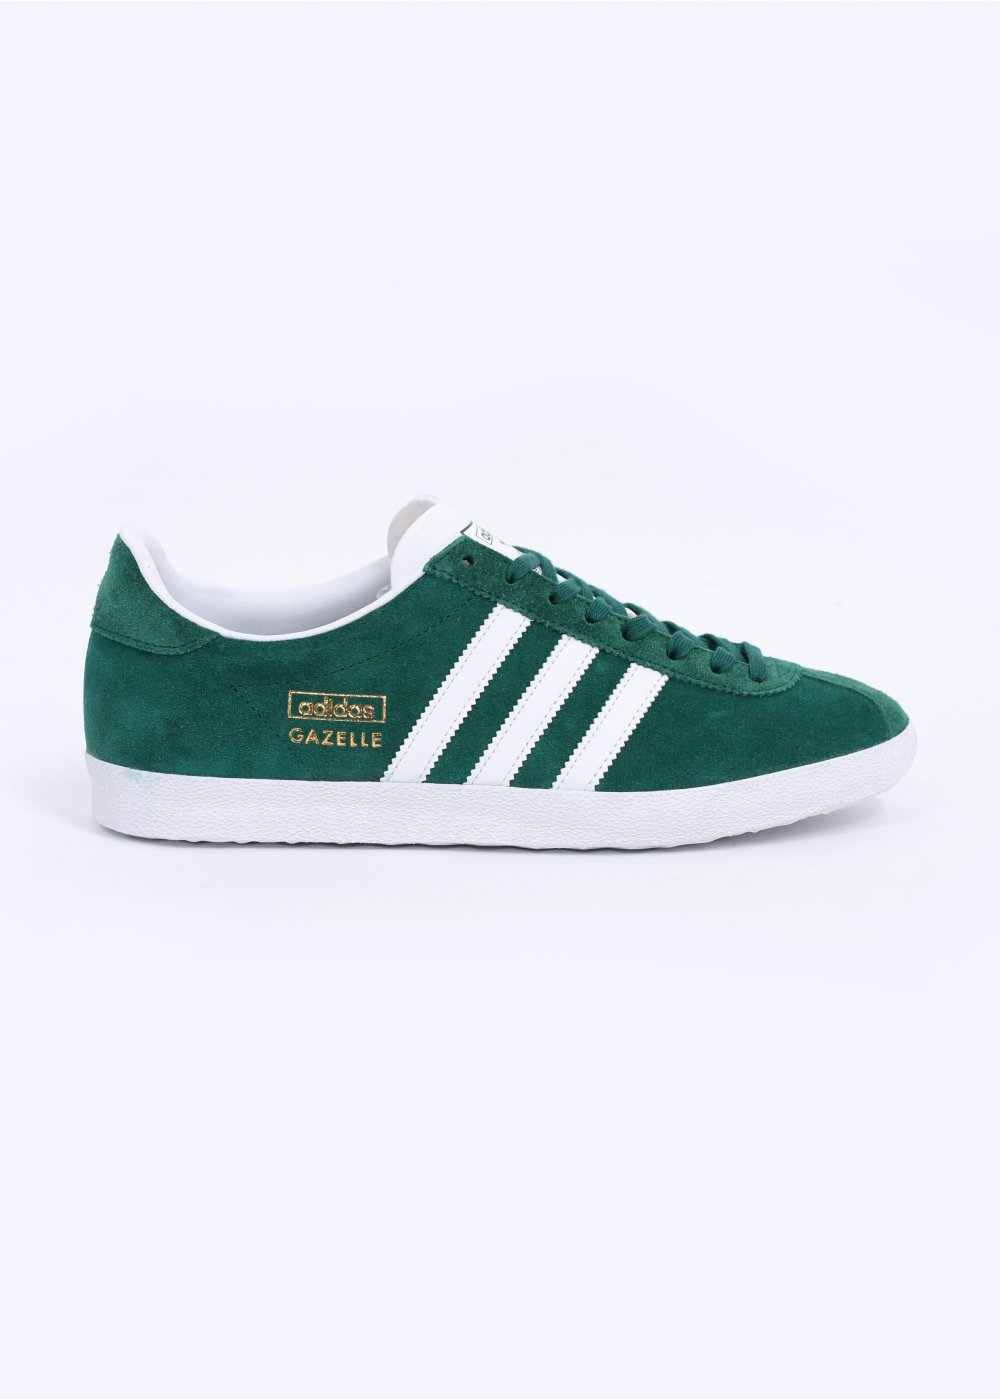 free shipping 8a9ab b4e29 Gazelle OG Trainers - Forest Green  Running White